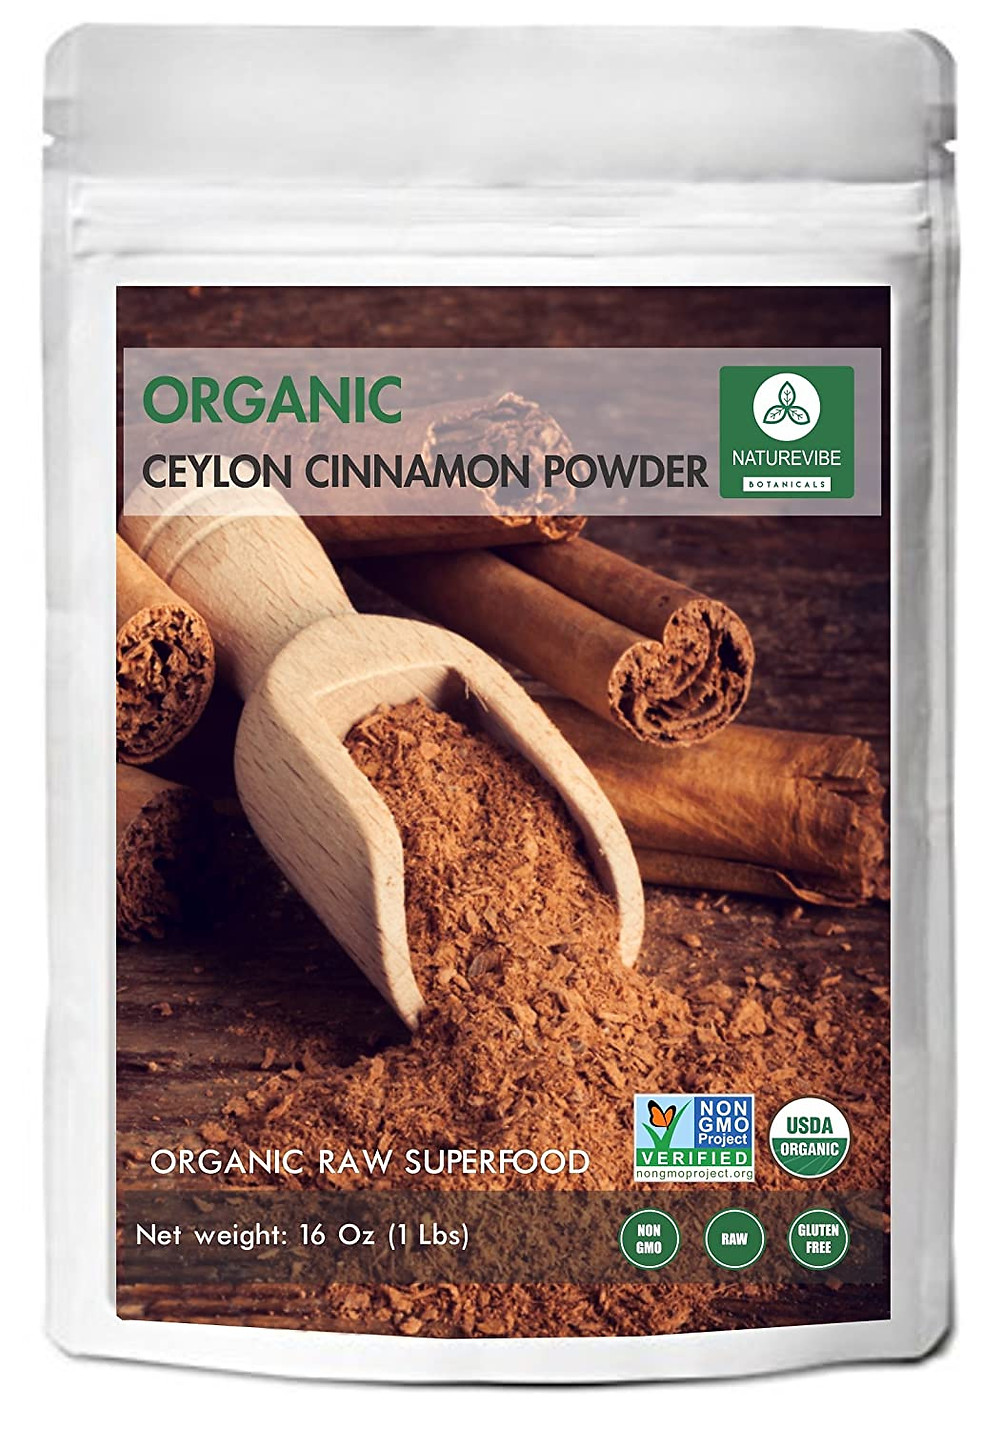 Healthy Life Selections recommends ceylon cinnamon for a healthy diet keto recipes and smoothies